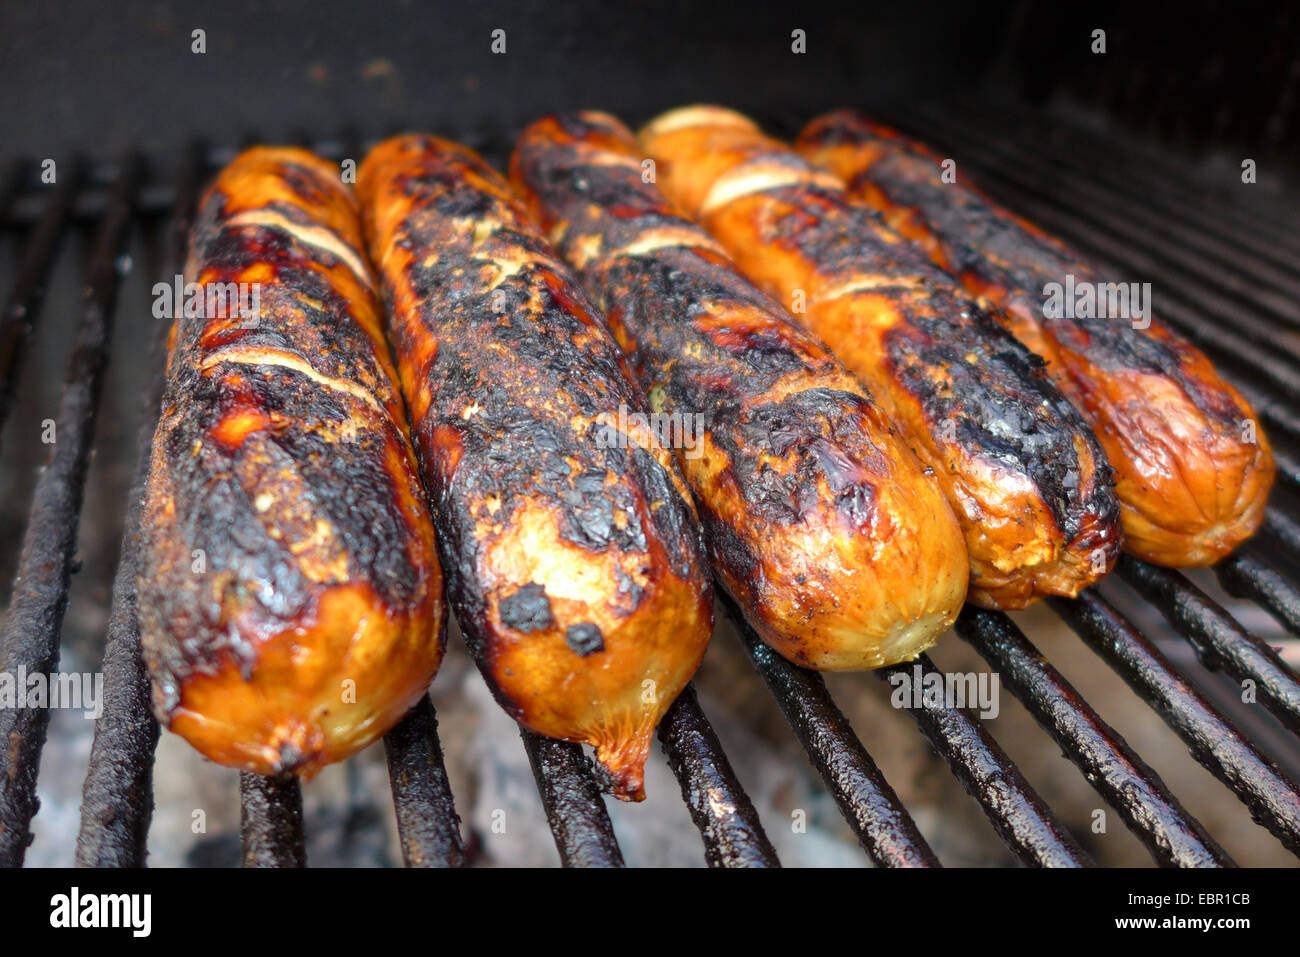 barbecue sausages on a grill - Stock Image